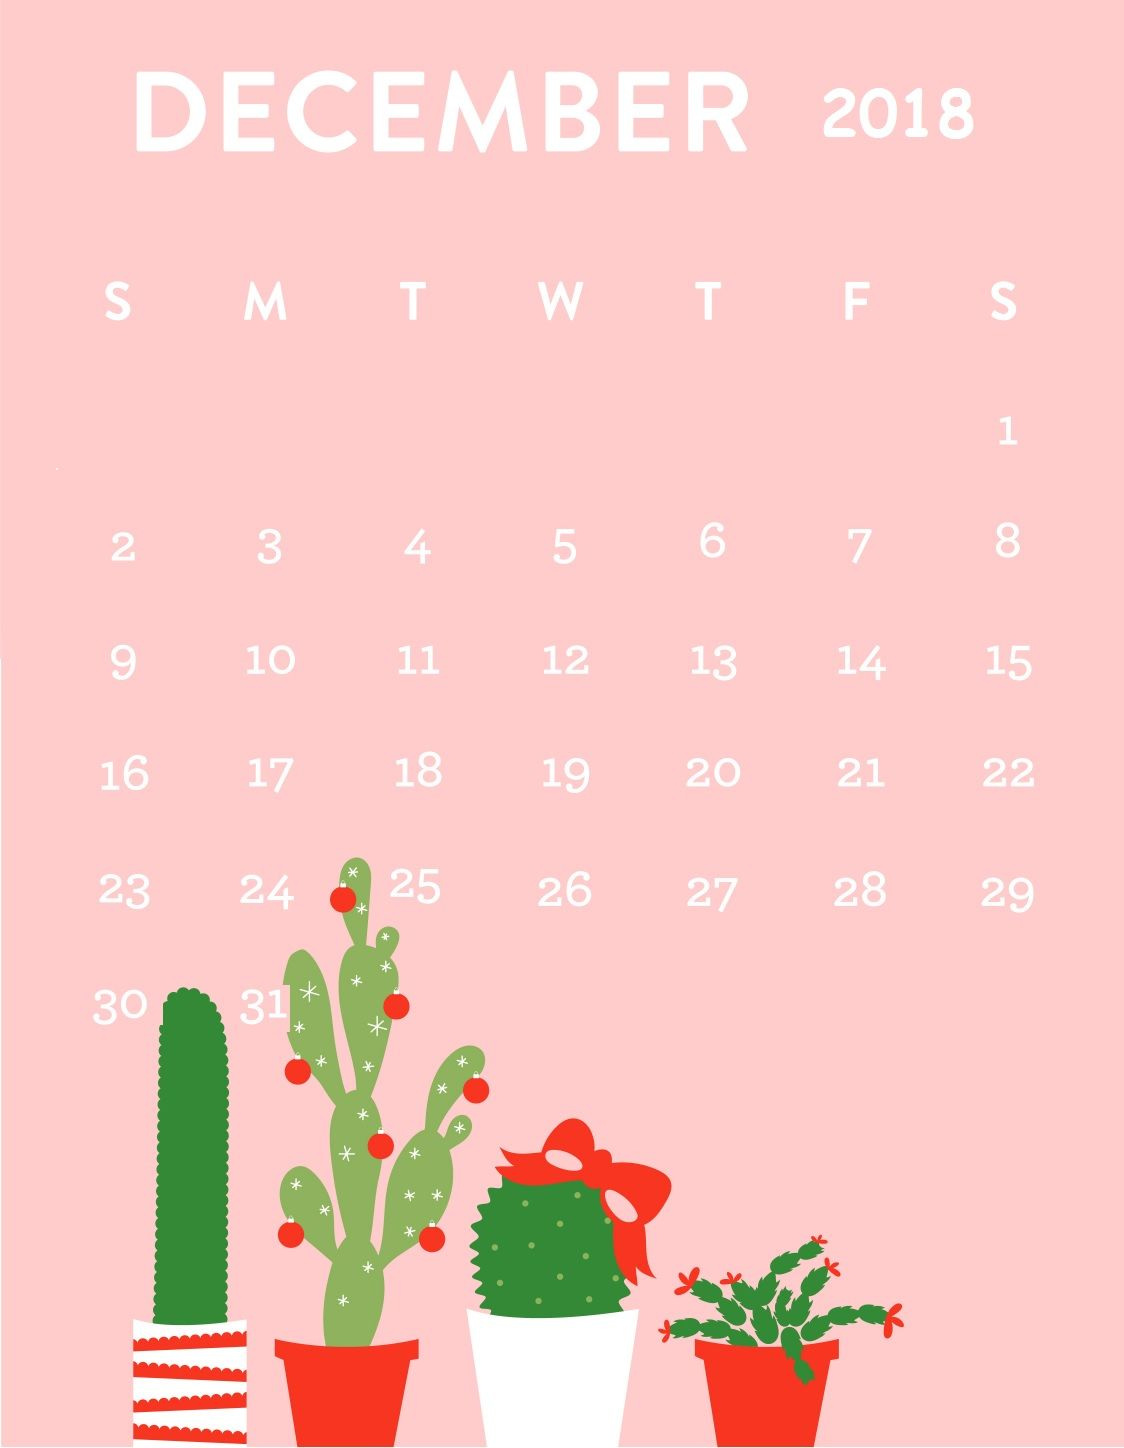 december 2018 calendar iphone wallpaper | hold the phone